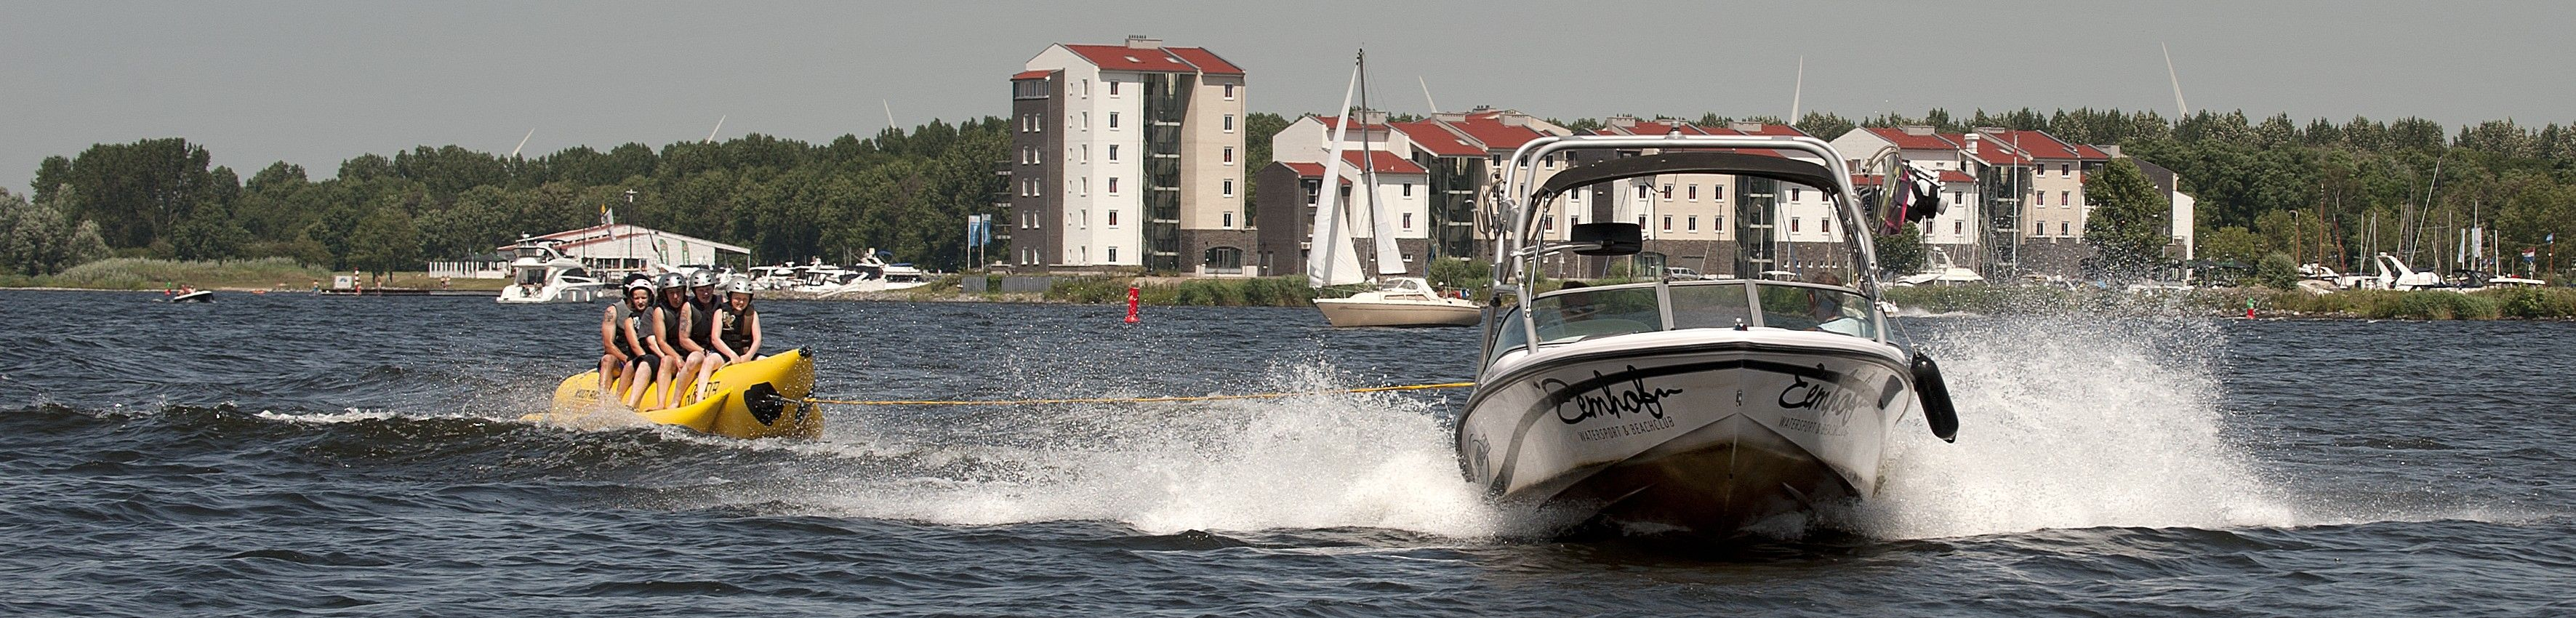 Bananenboot | Banaanvaren | Eemhof Watersport & Beachclub